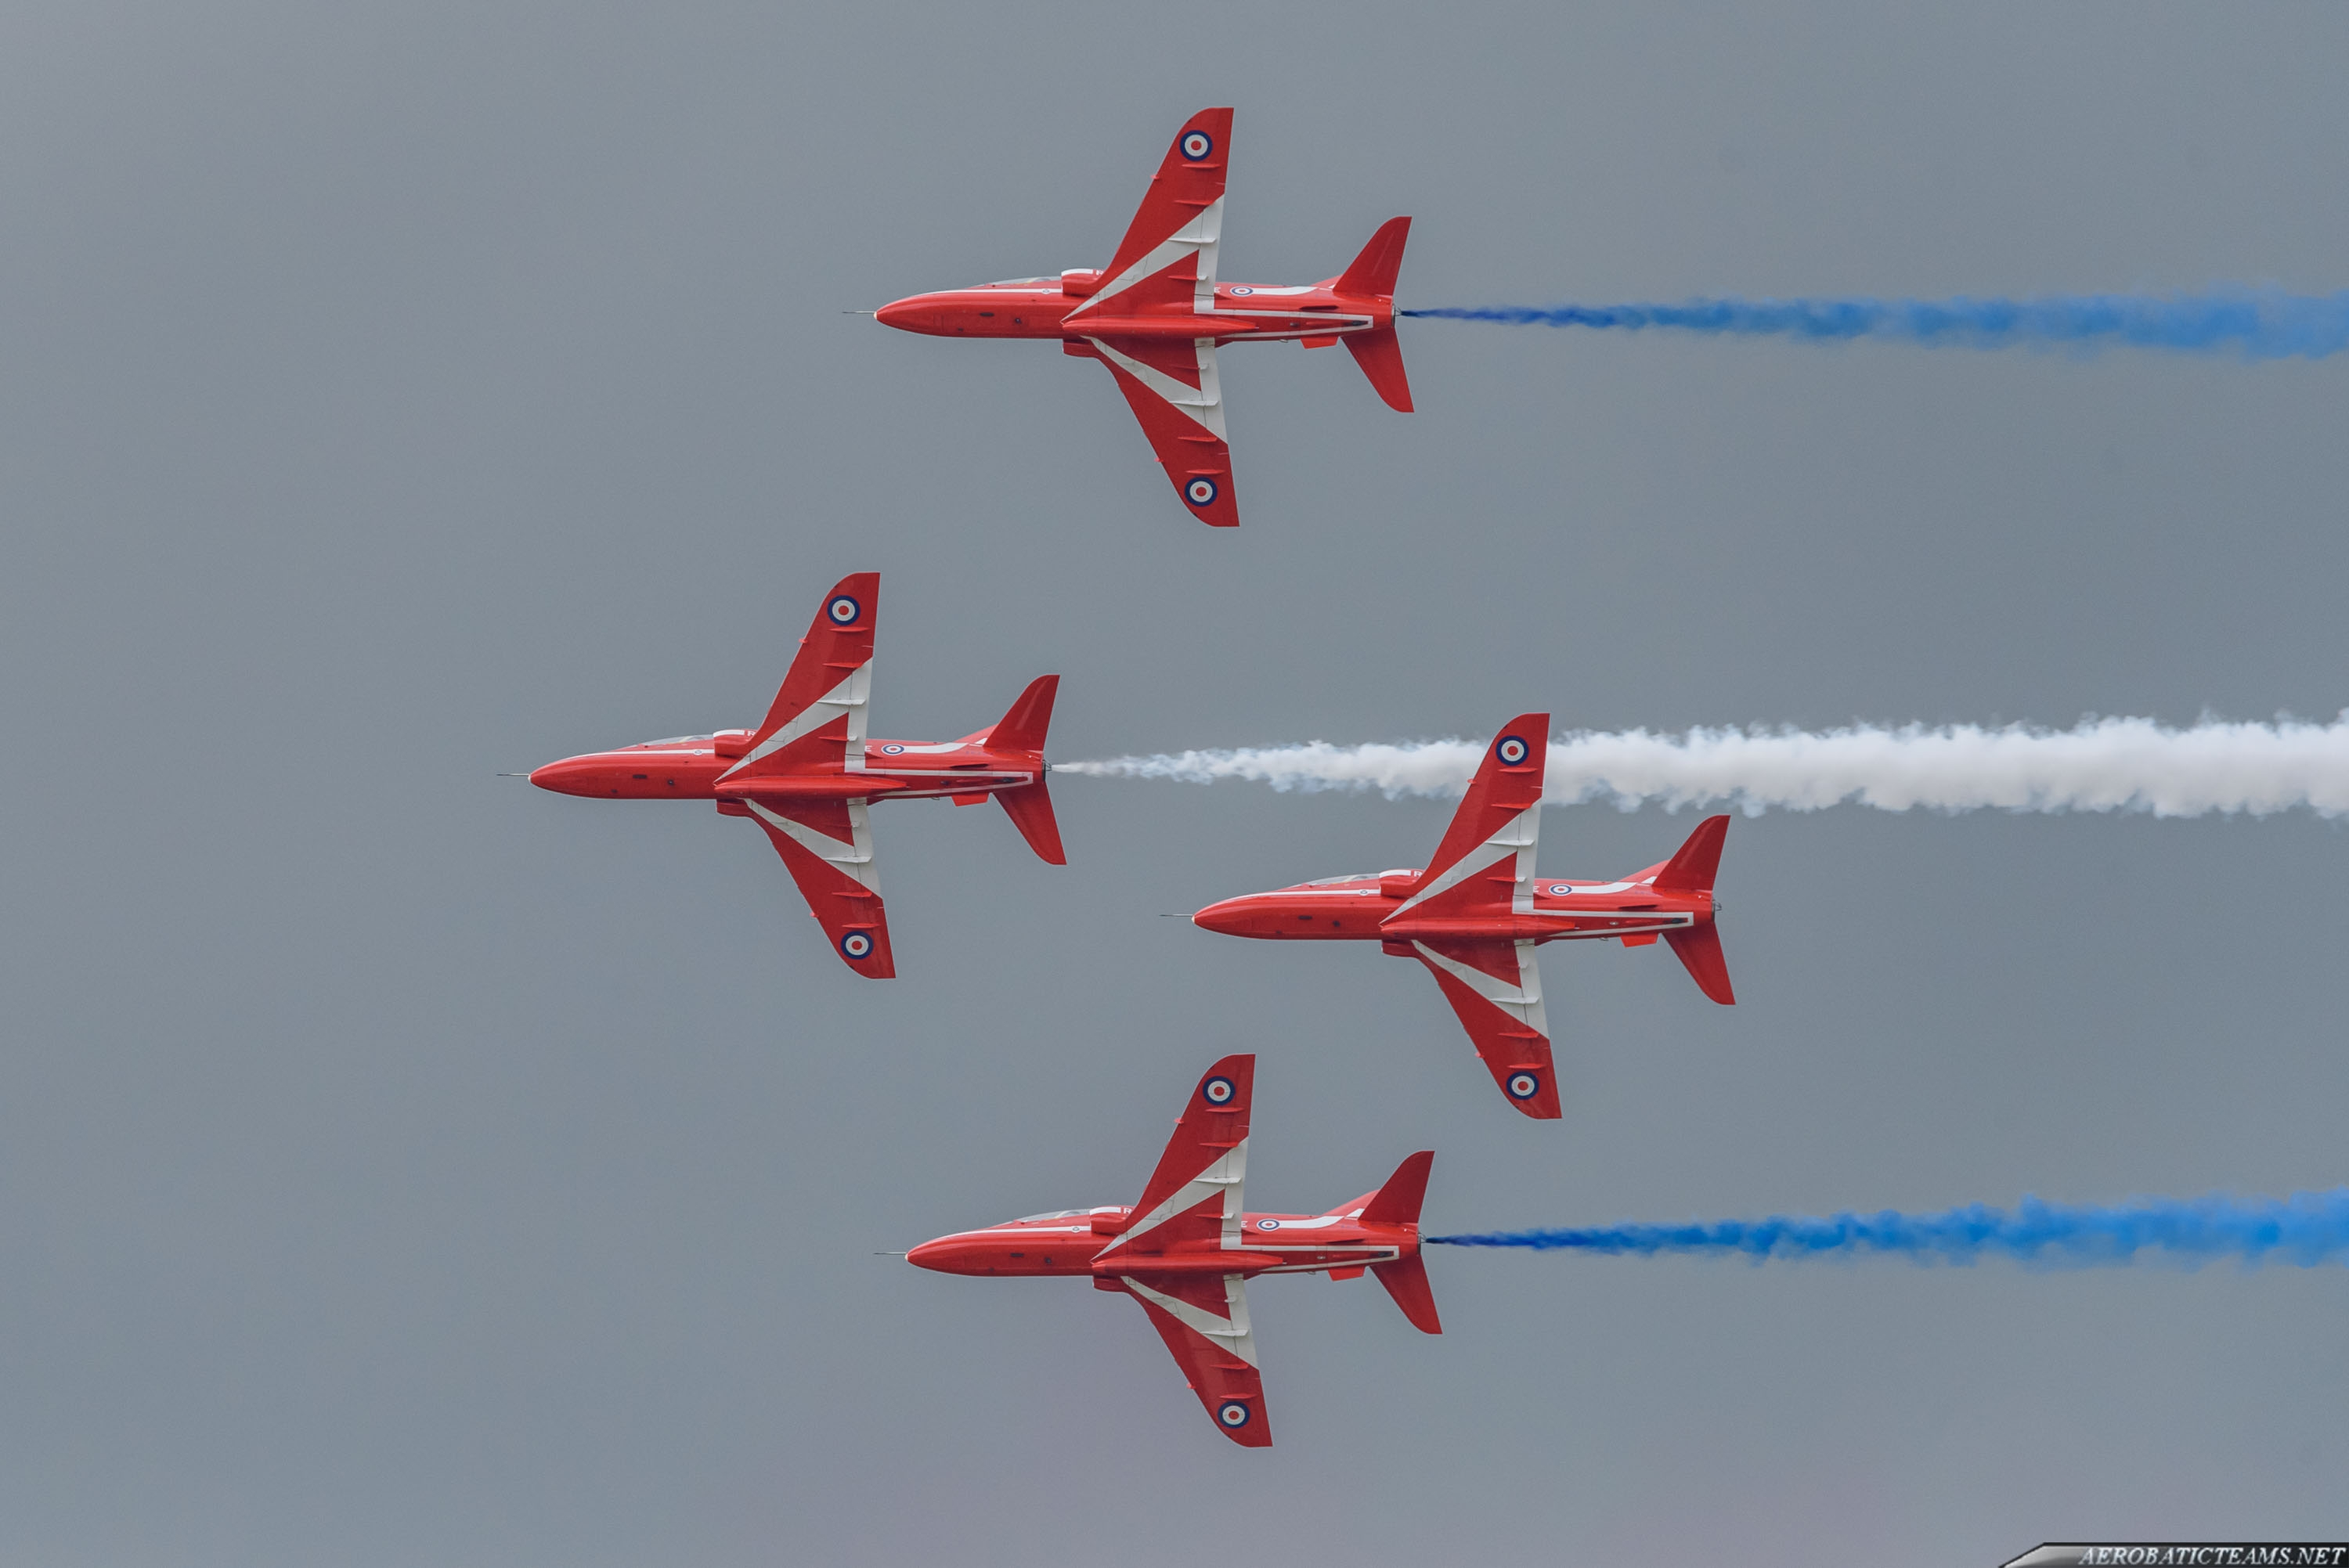 Red Arrows 2018 Display dates